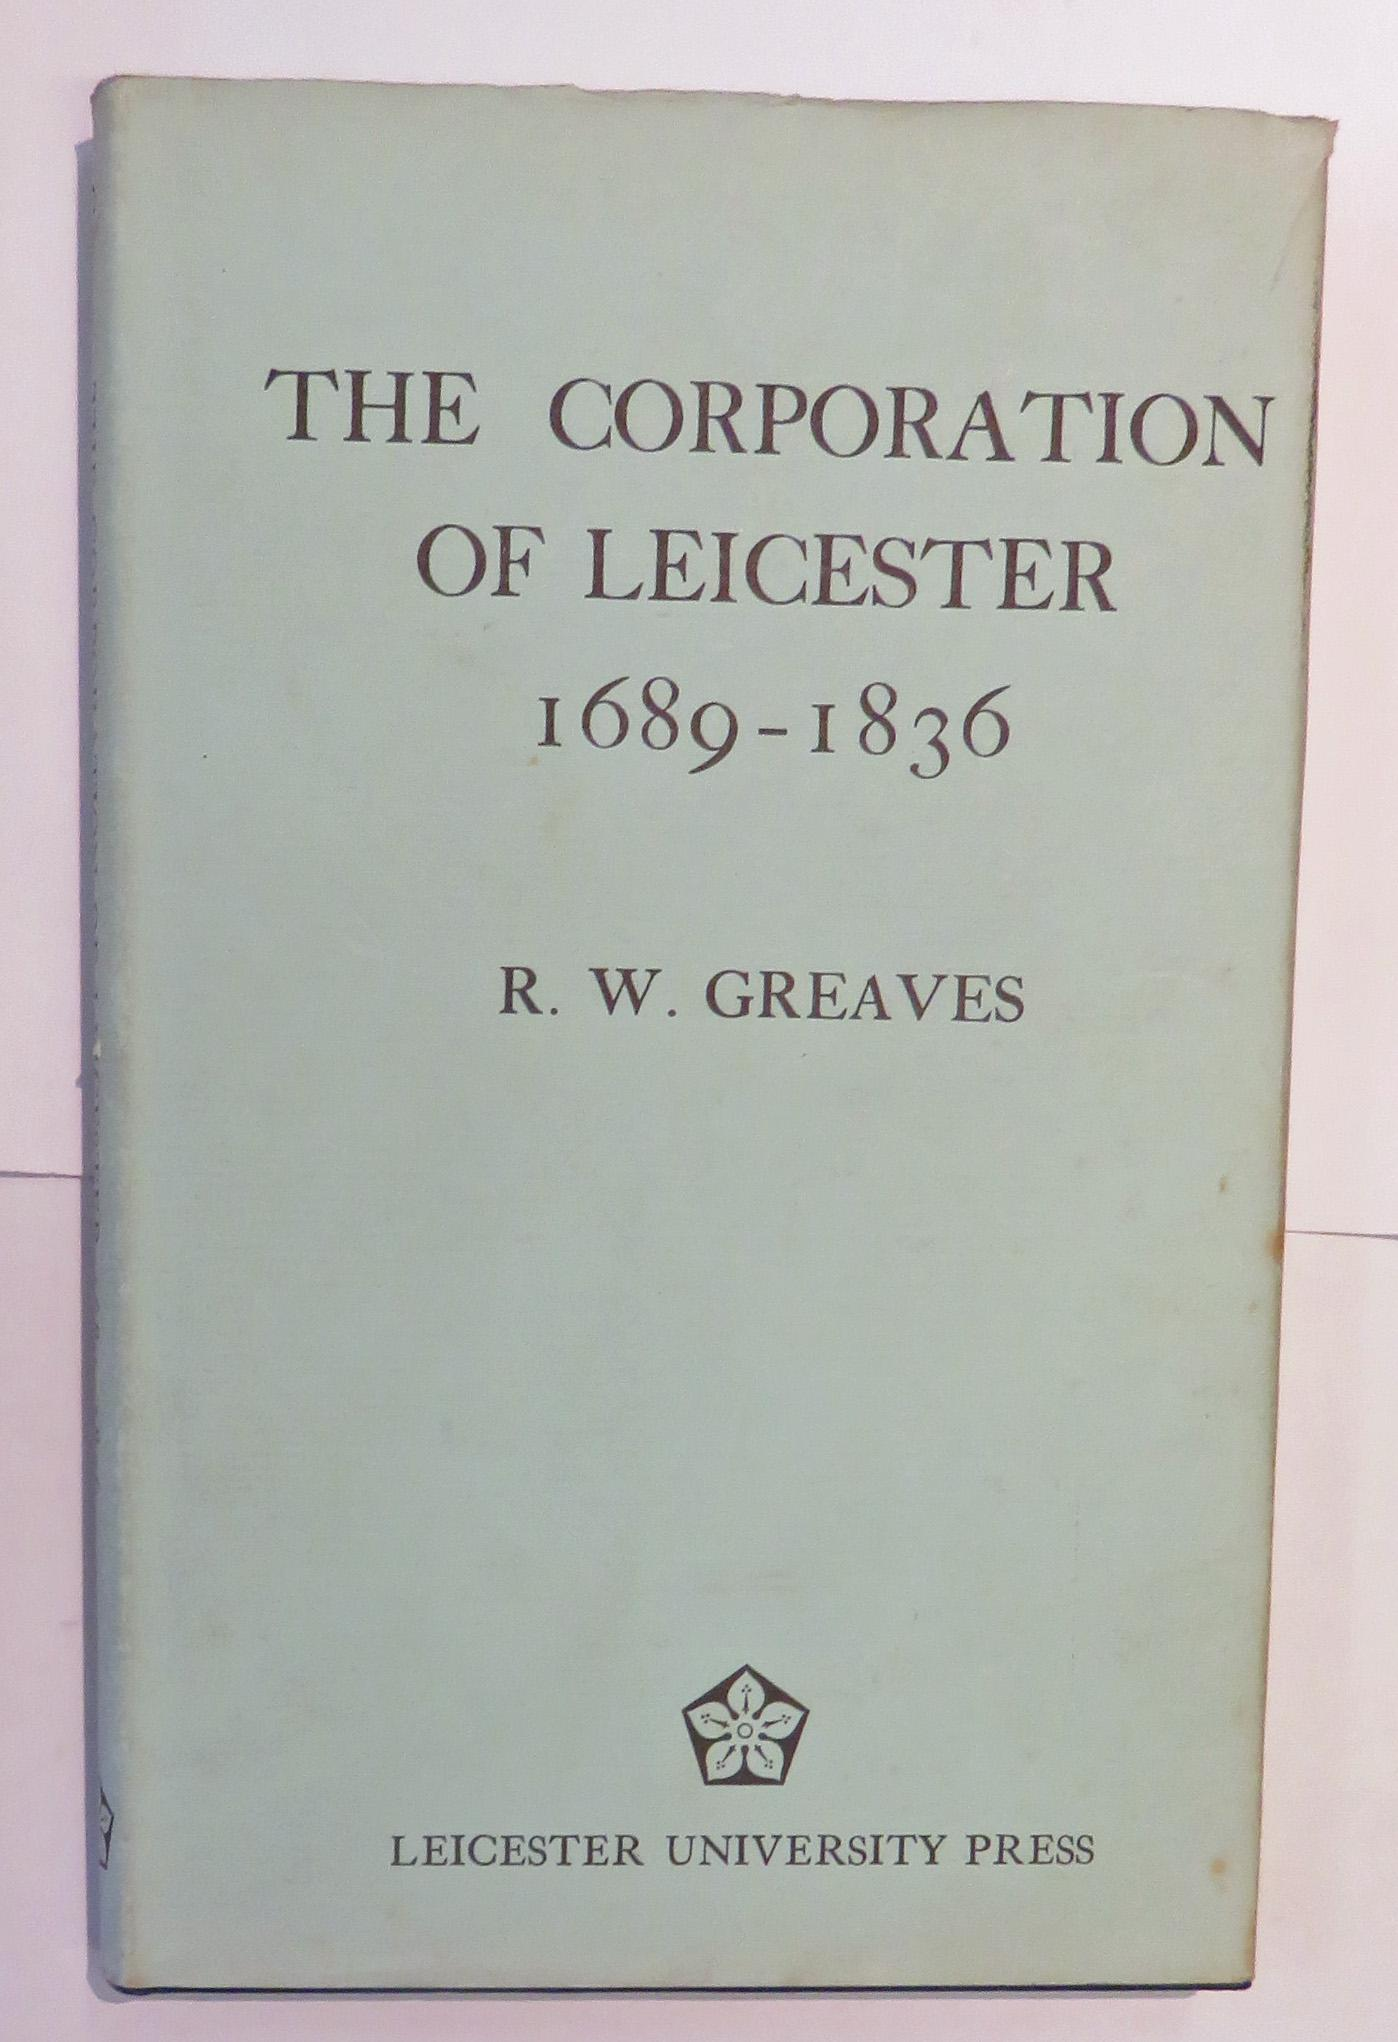 The Corporation of Leicester 1689-1836